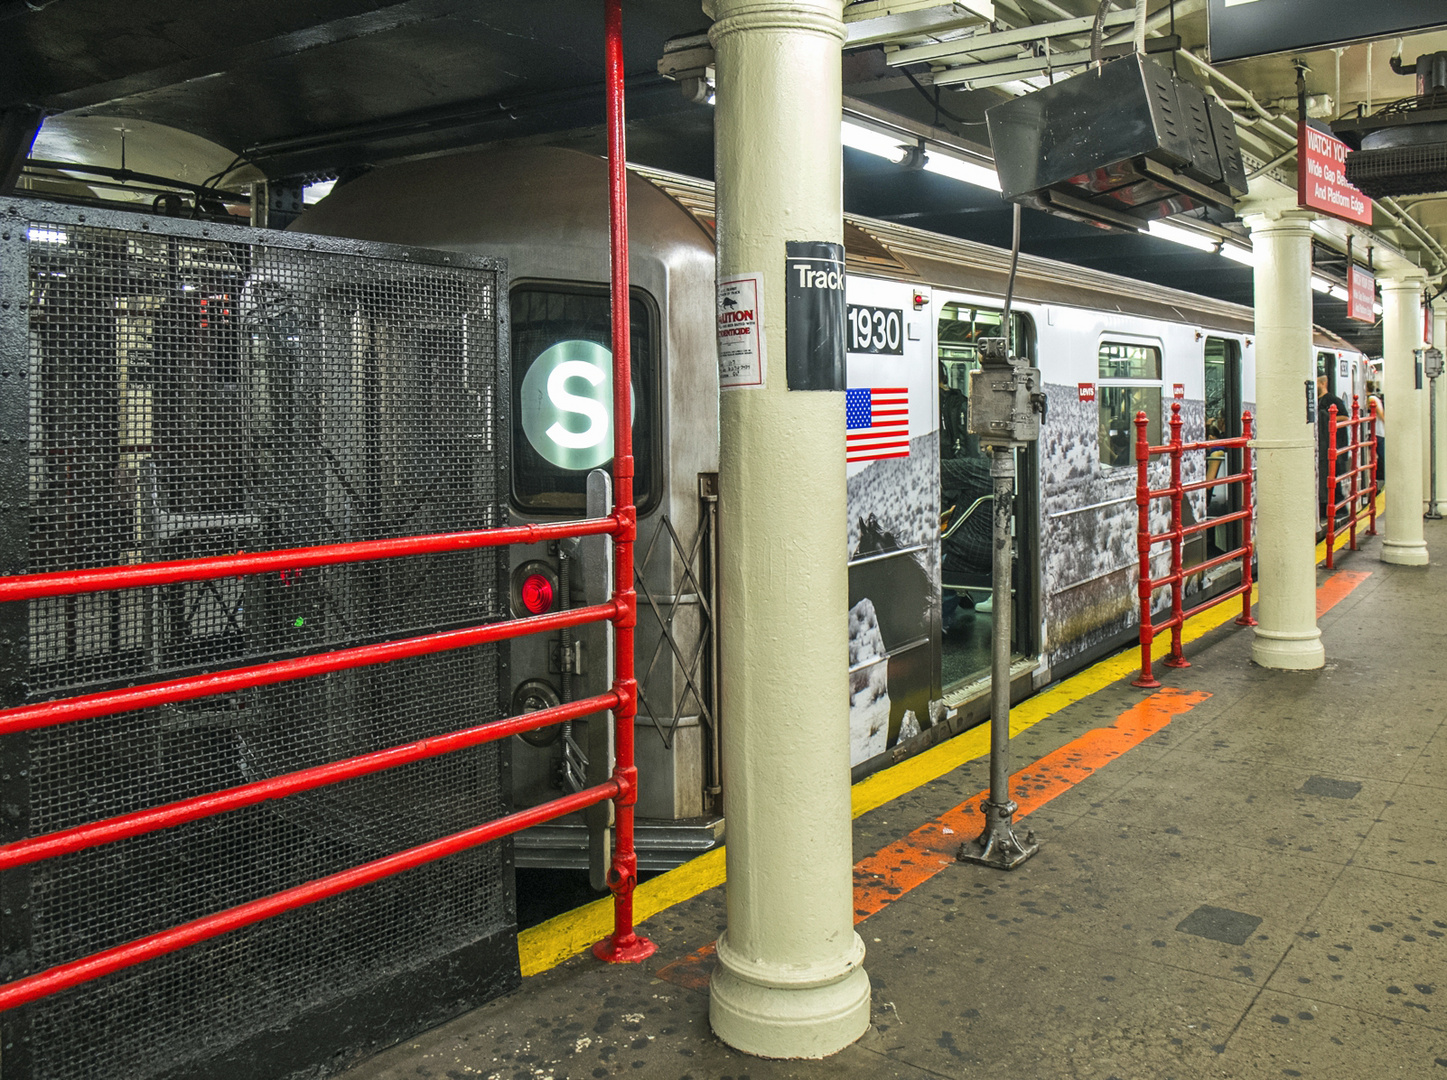 Shuttle Train Times Square 42nd Street